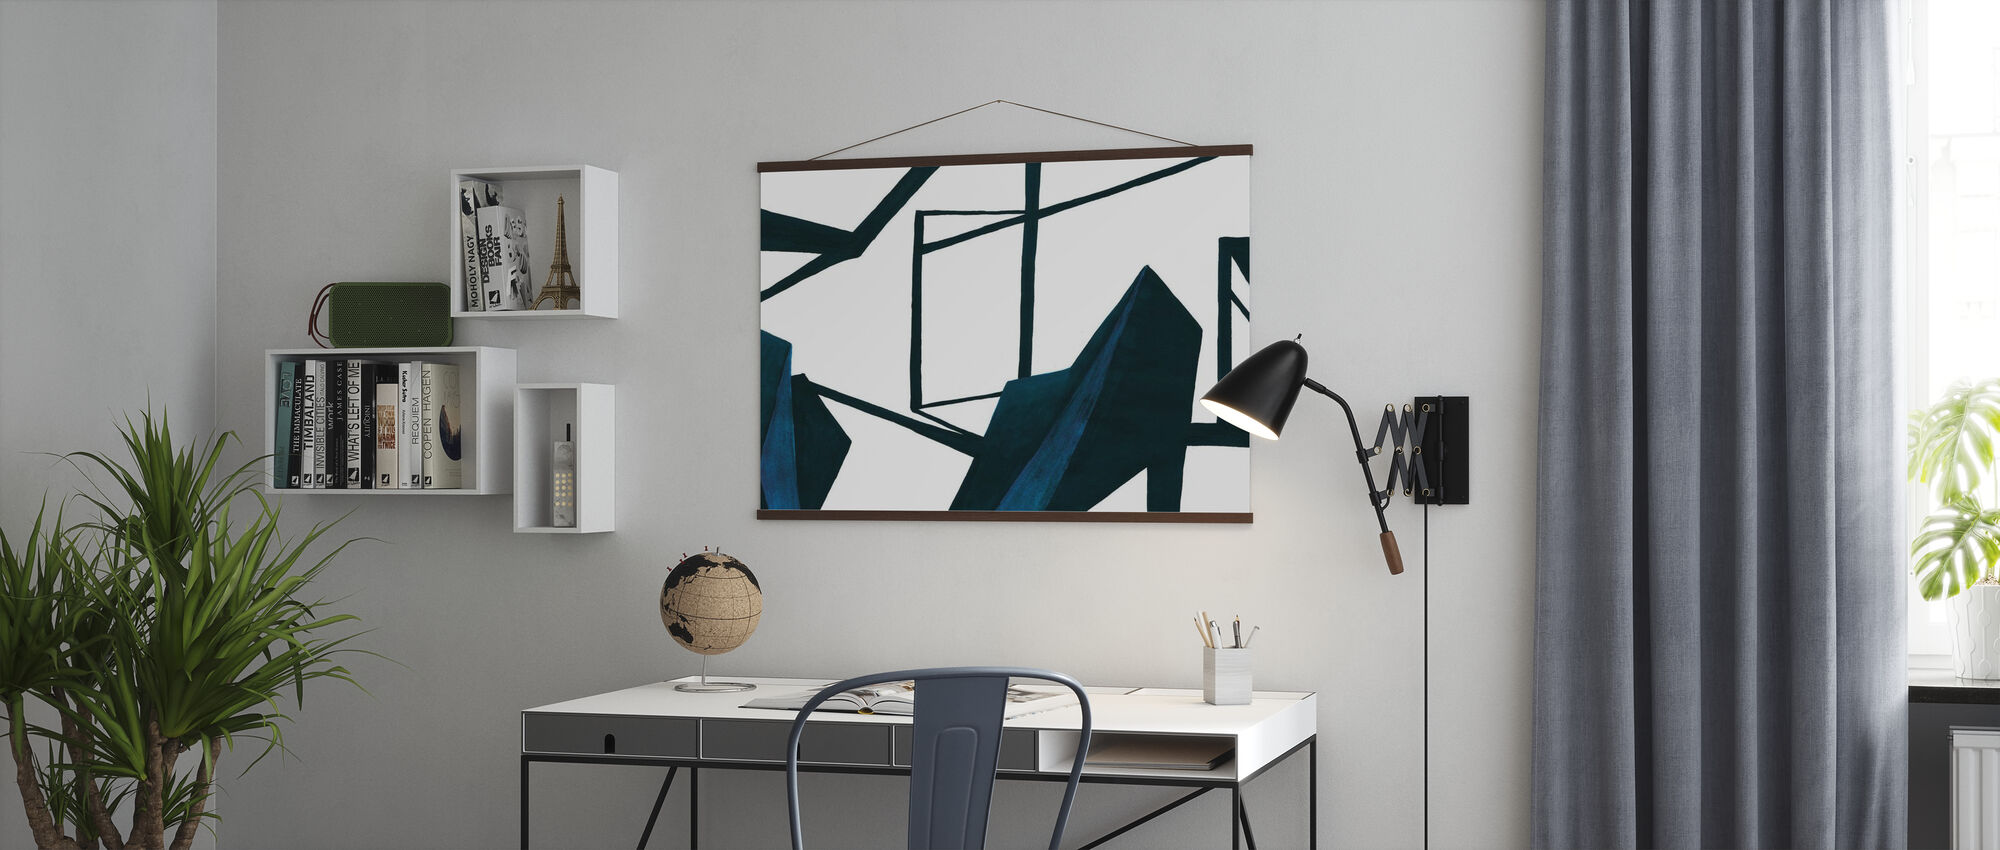 In this Room - Poster - Office